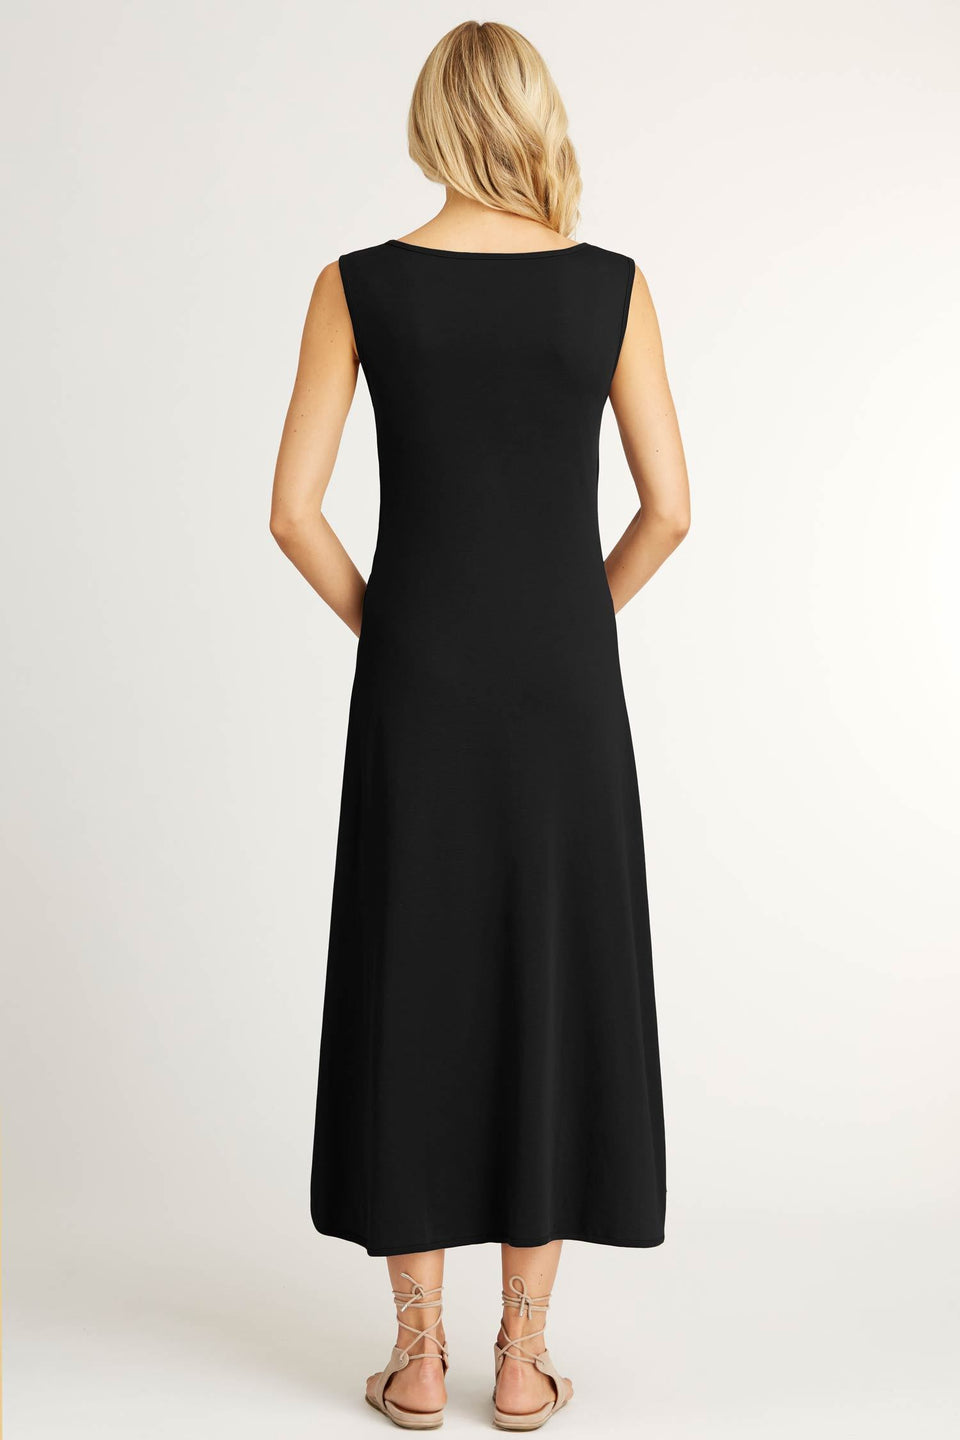 Boatneck Dress in Black